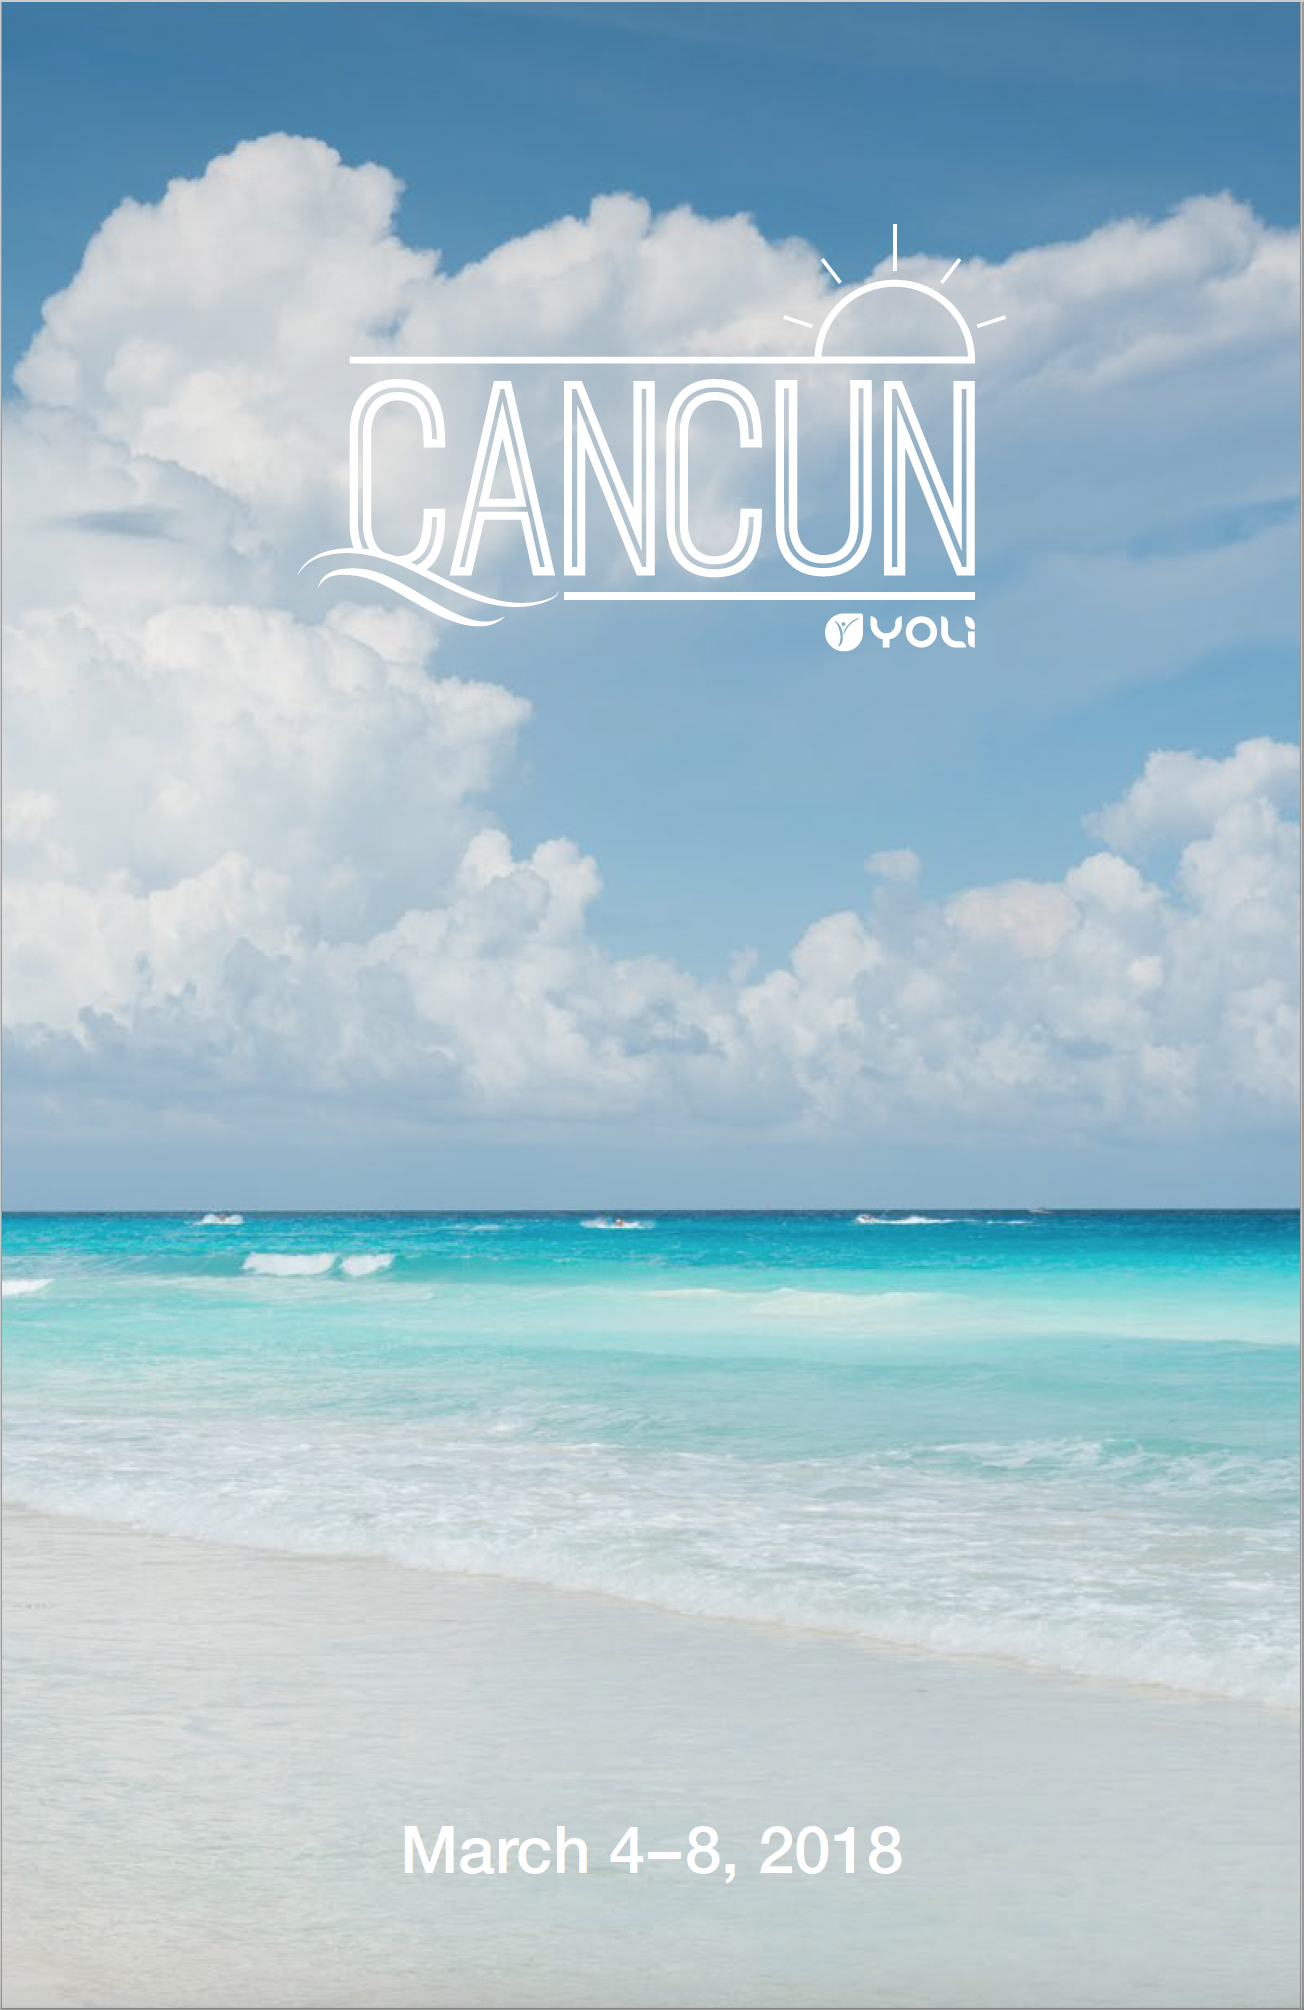 Cancun_travel cover.png